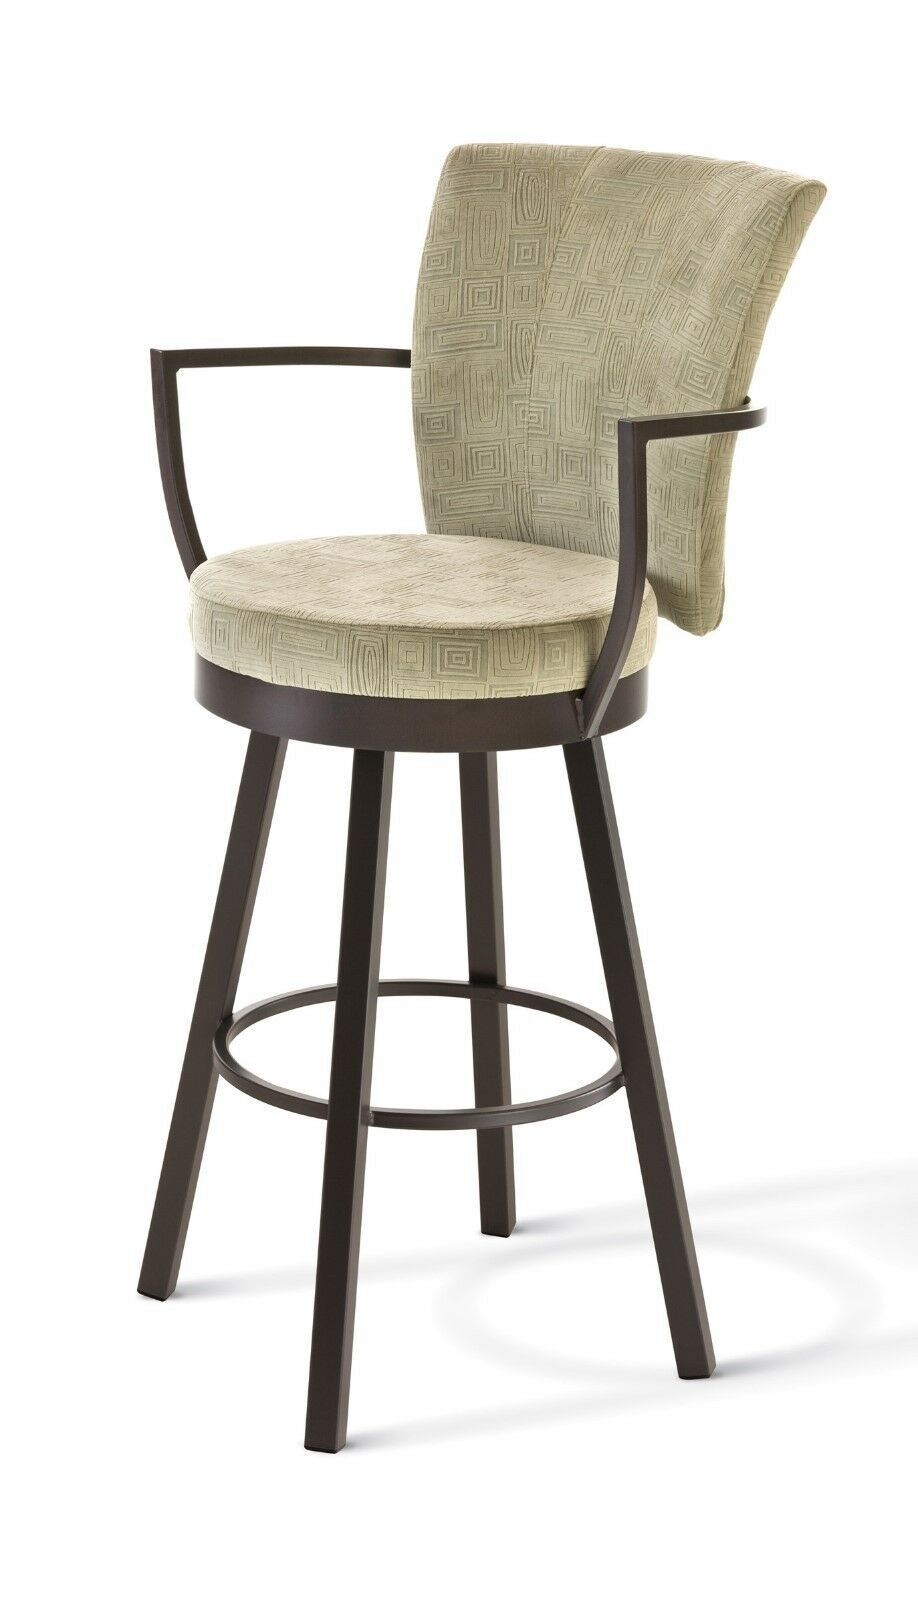 Available In Counter Bar Height Or Spectator Height 34 Spectator Height 22 1 4 W X 25 1 2 D X 4 Swivel Bar Stools Bar Stools With Backs Stools With Backs